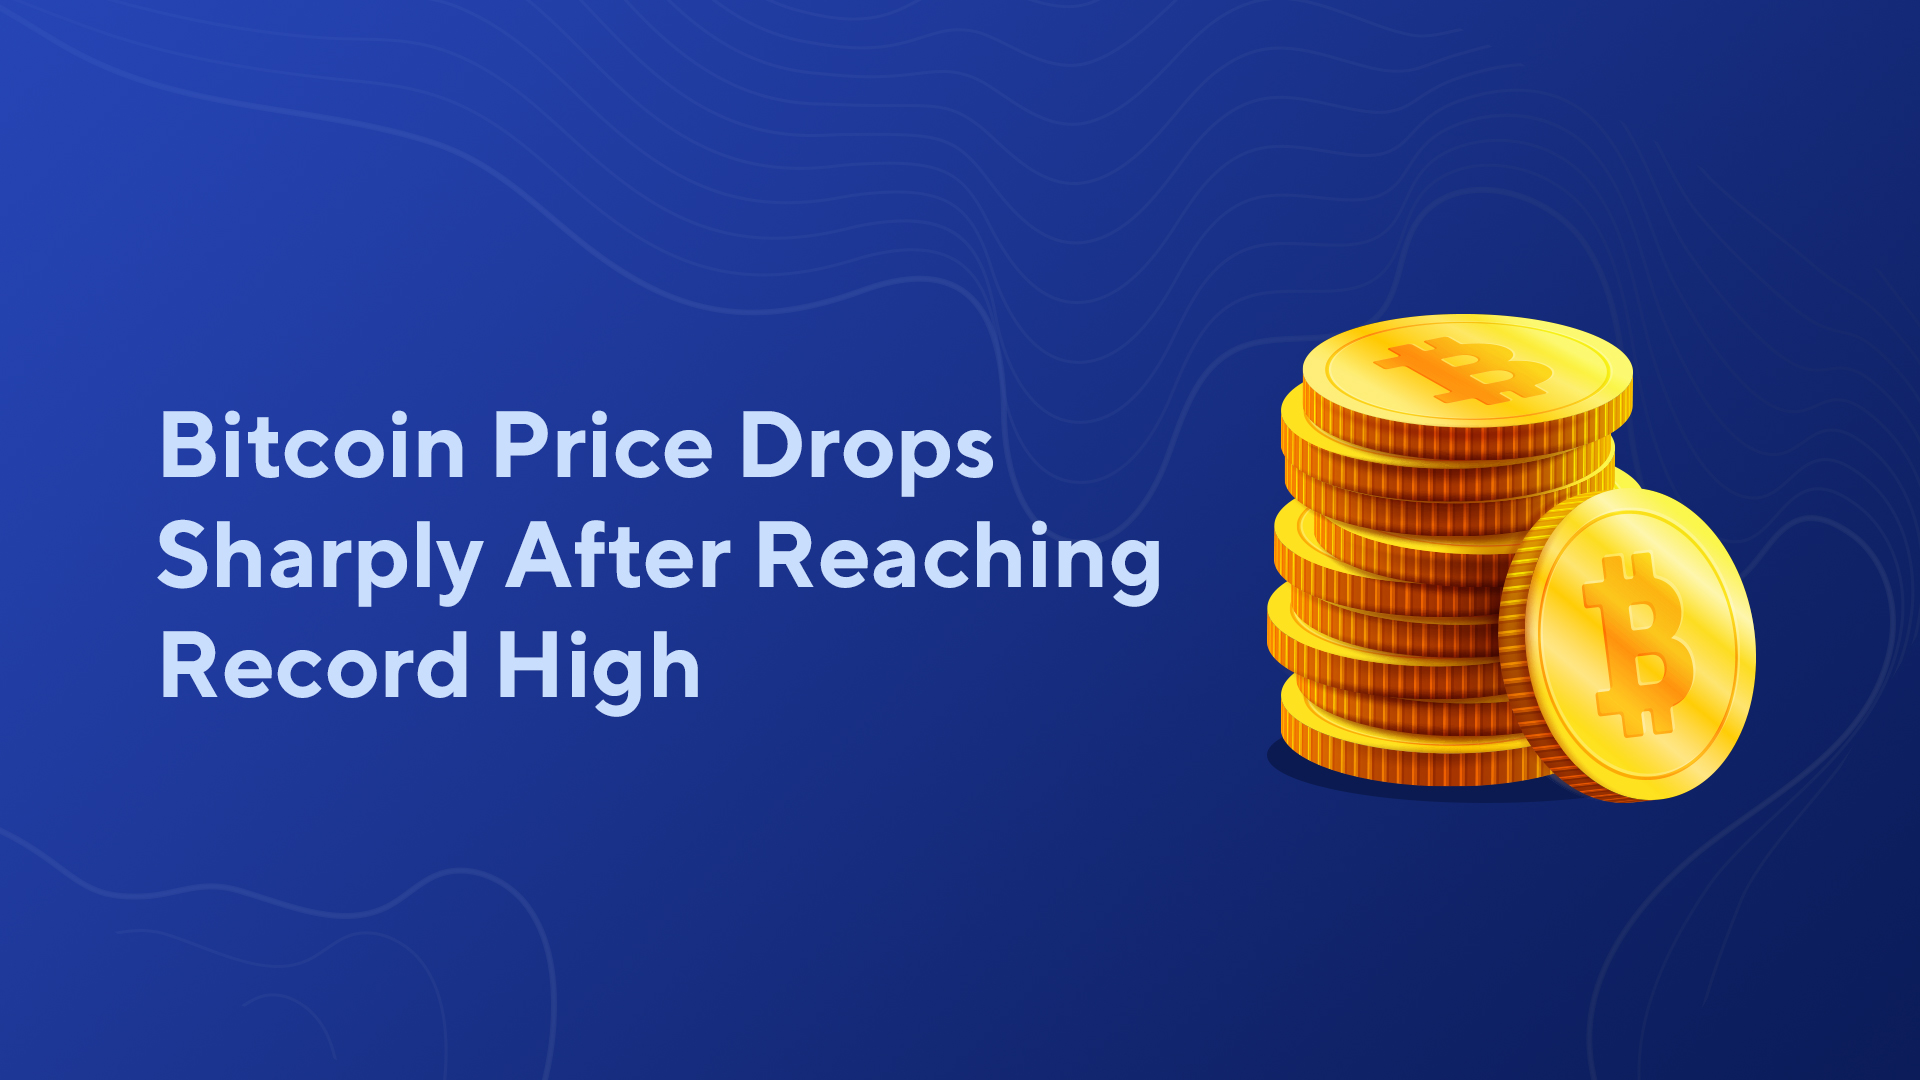 Bitcoin Price Drops Sharply After Reaching Record High